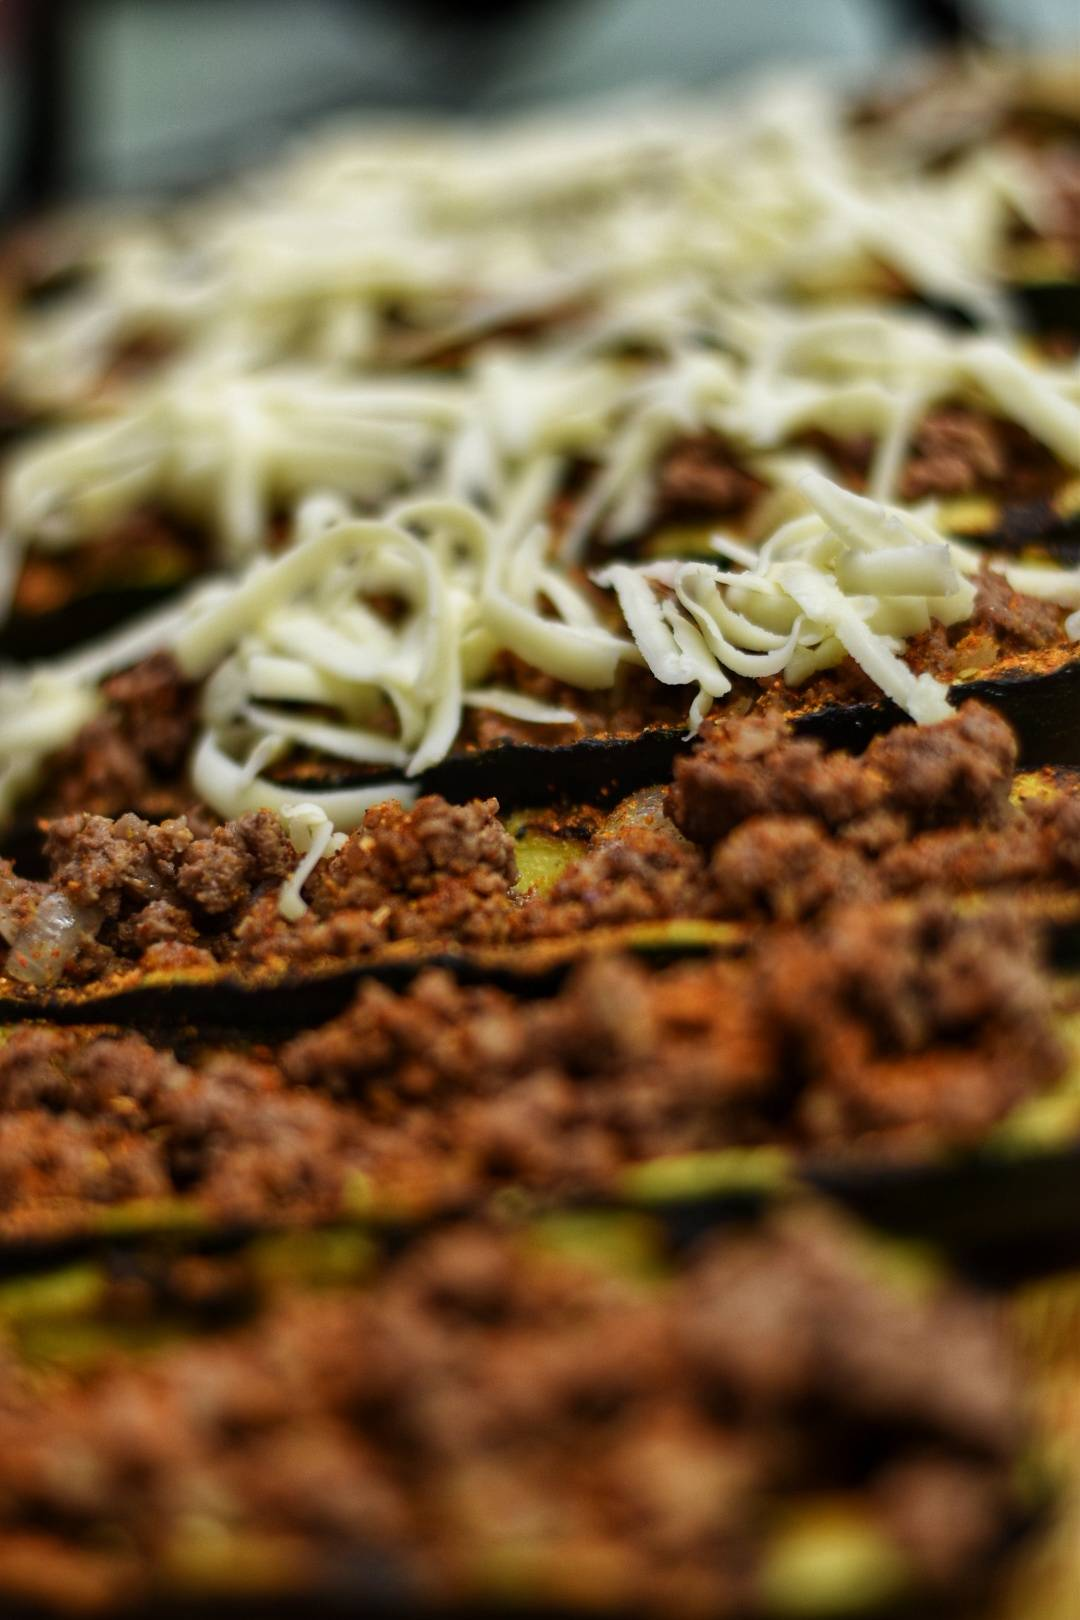 Grilled zucchini with ground beef and shredded cheese